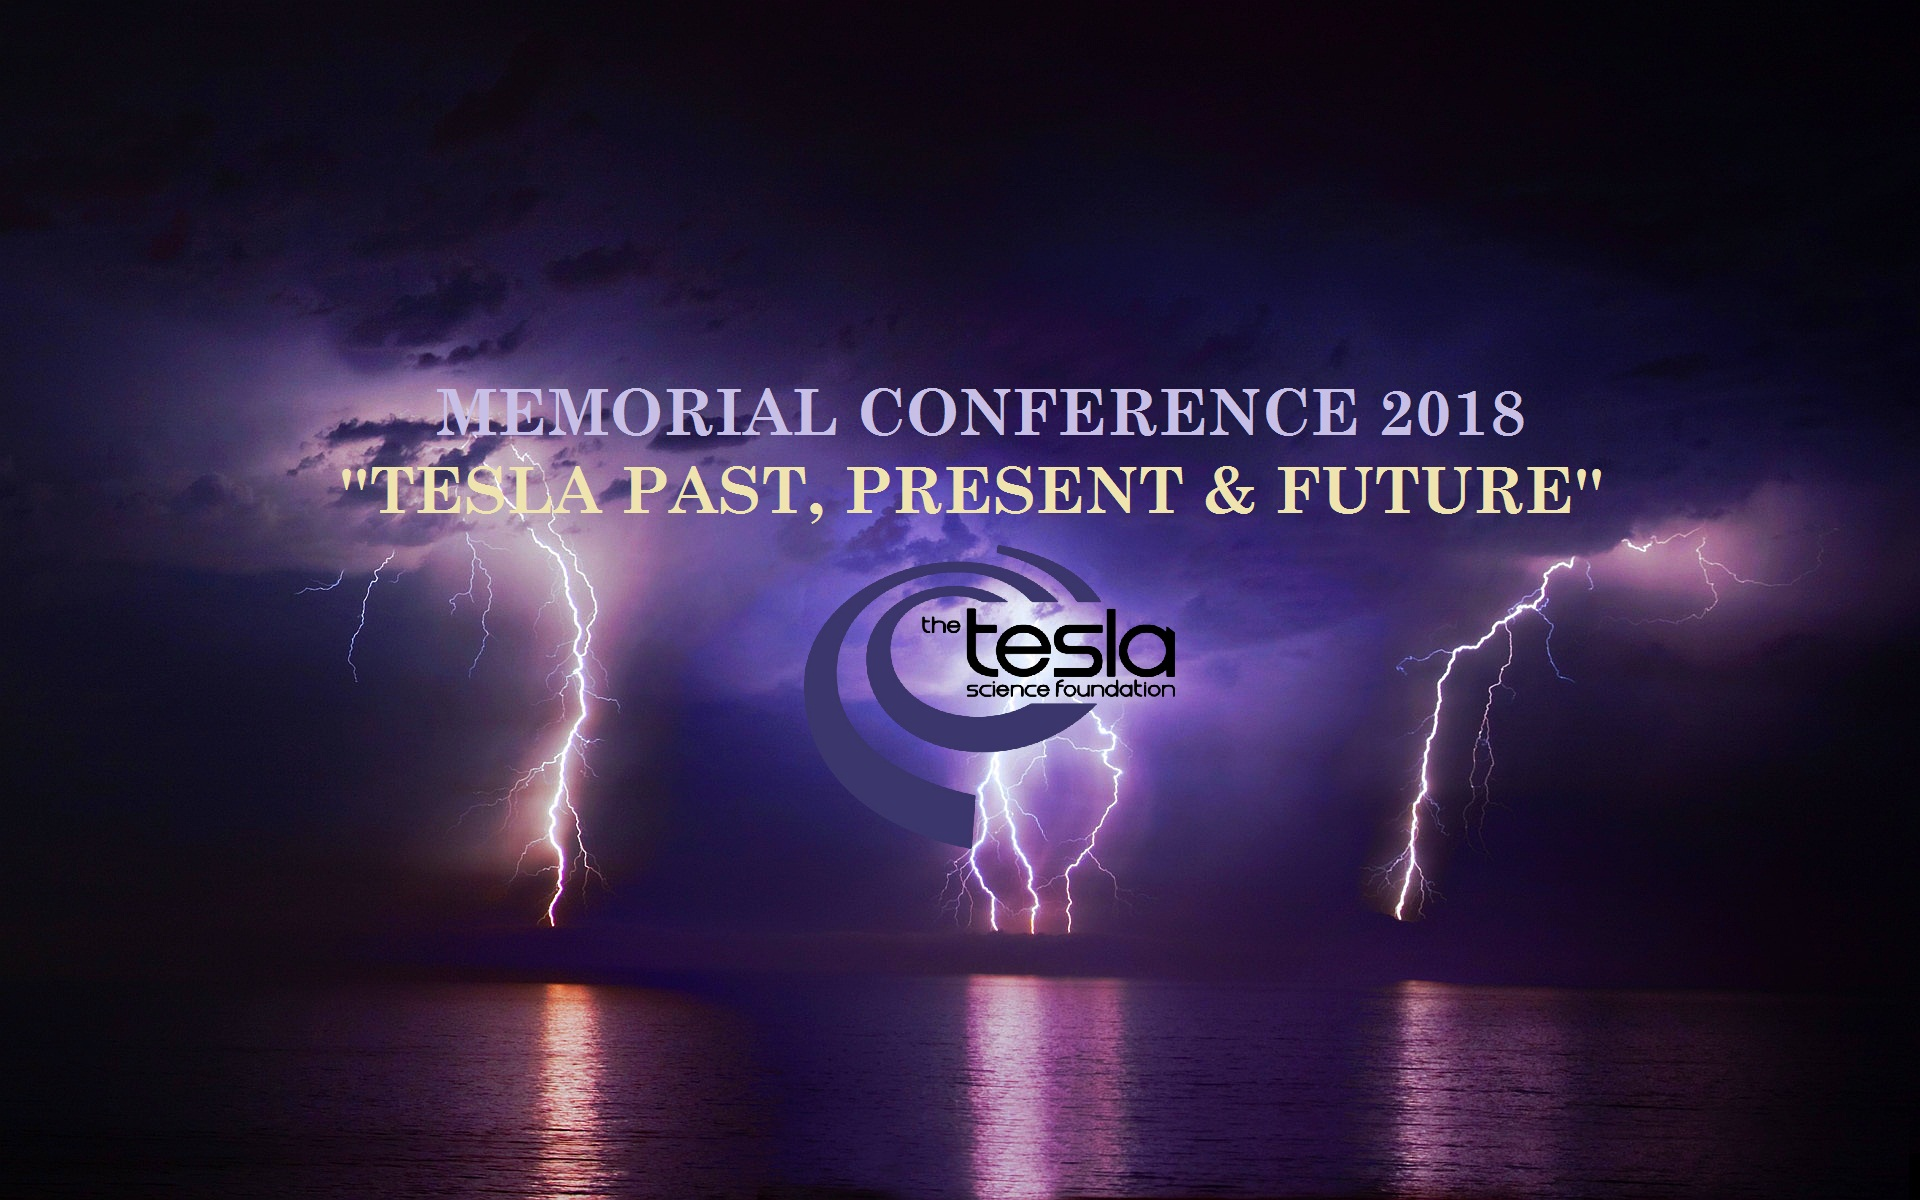 TESLA SCIENCE FOUNDATION CONFERENCE 2018